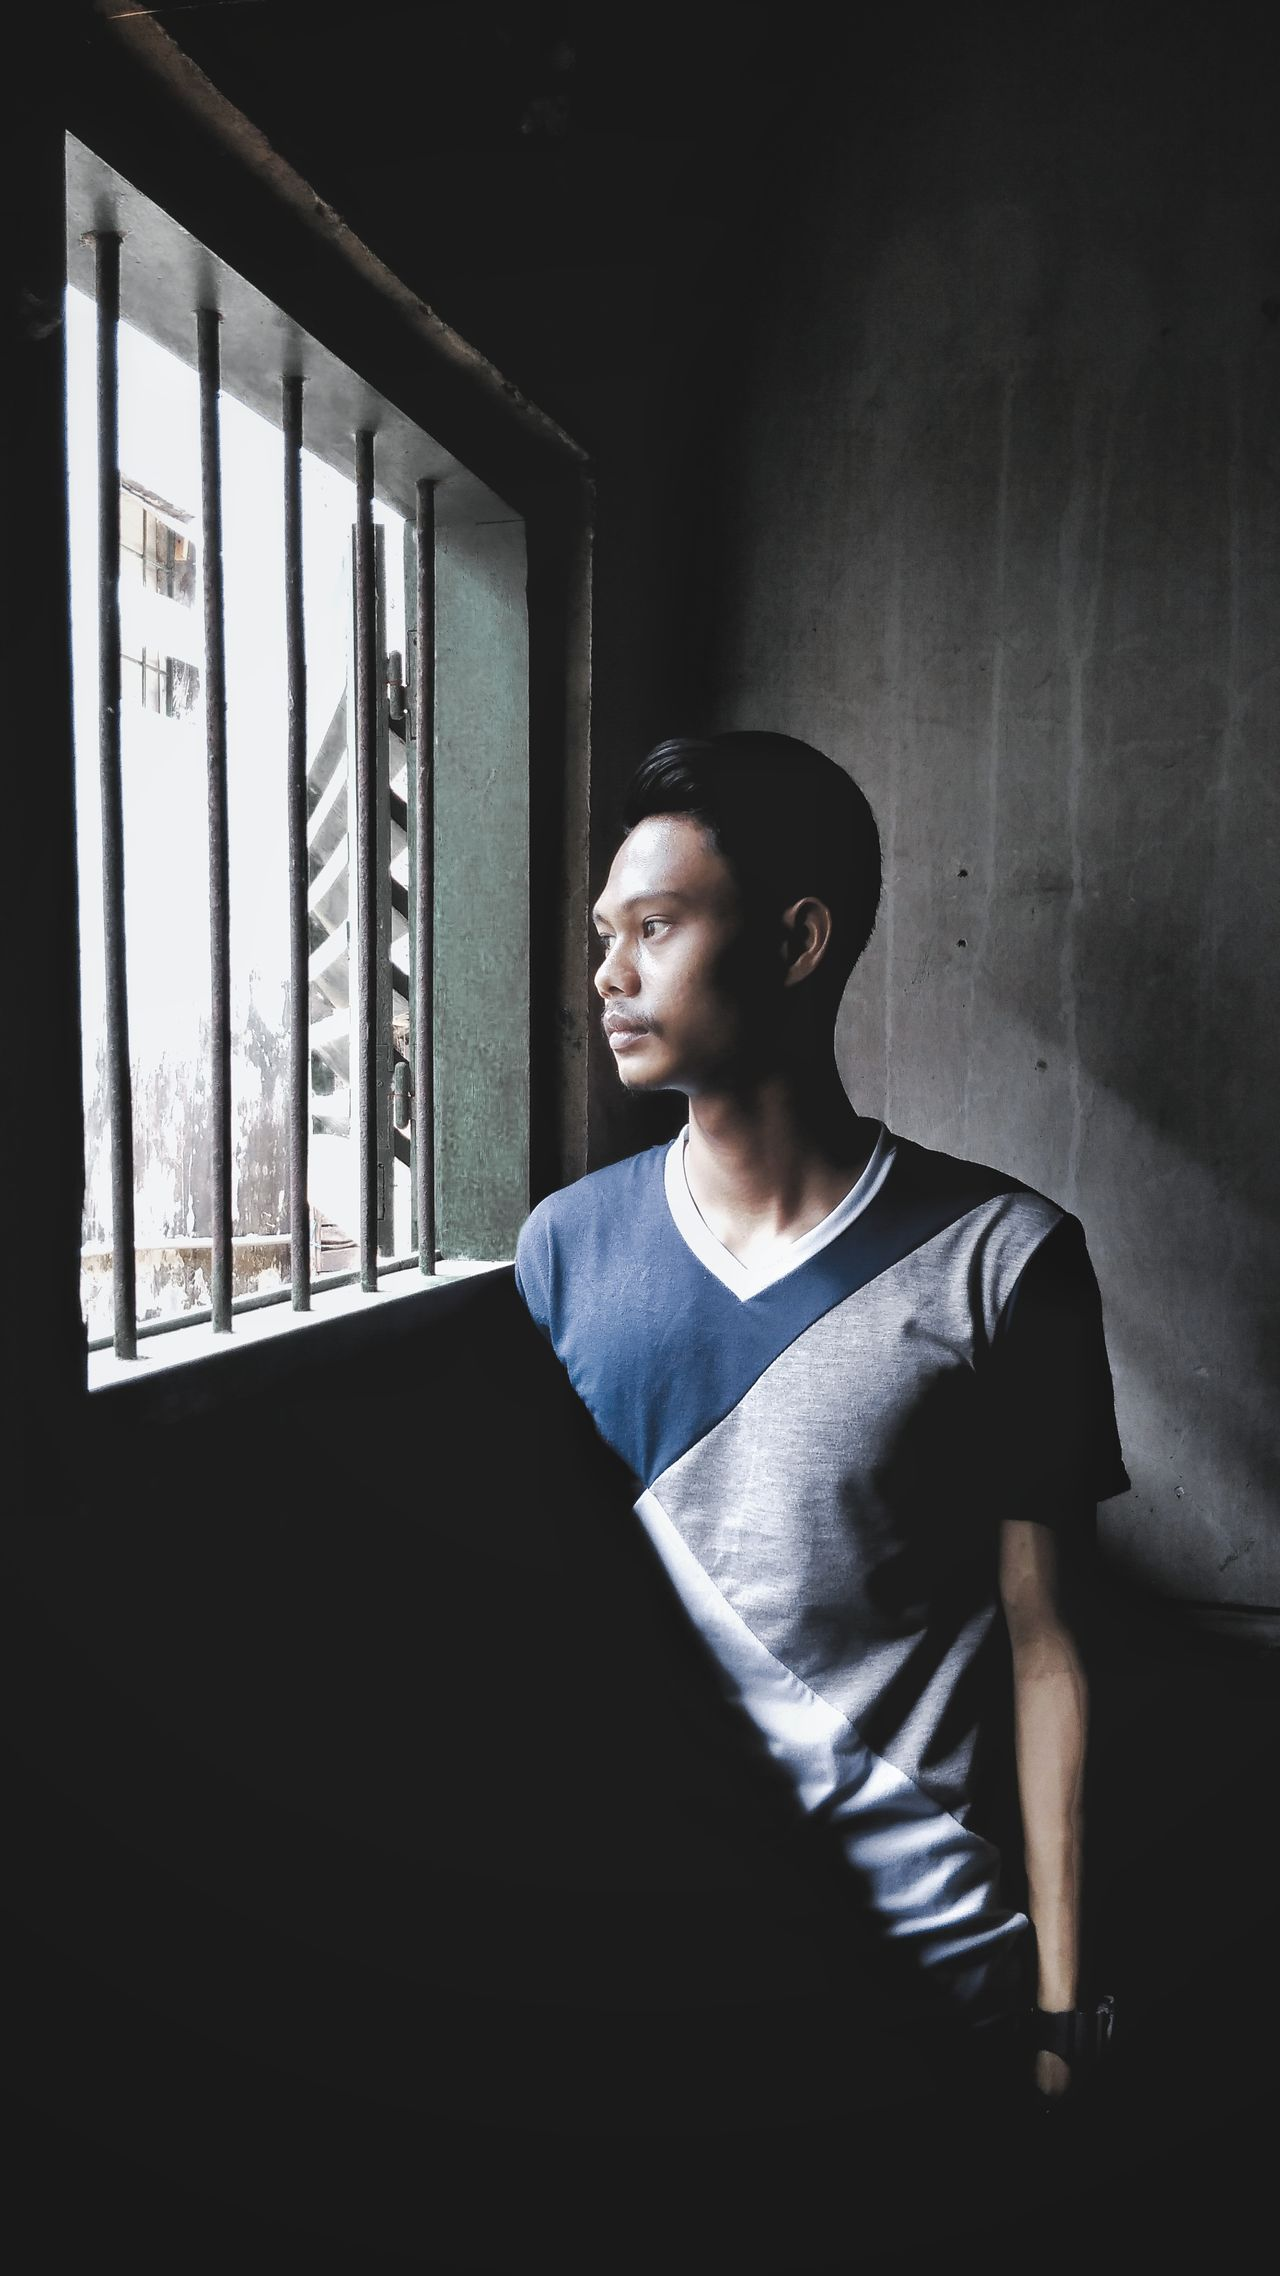 One Person Window People Lifestyles TCPM First Eyeem Photo Looking At Camera Hellhouse Day Folk Folkindonesia Alone Portrait Livefolks Alonetime Livefolkindonesia